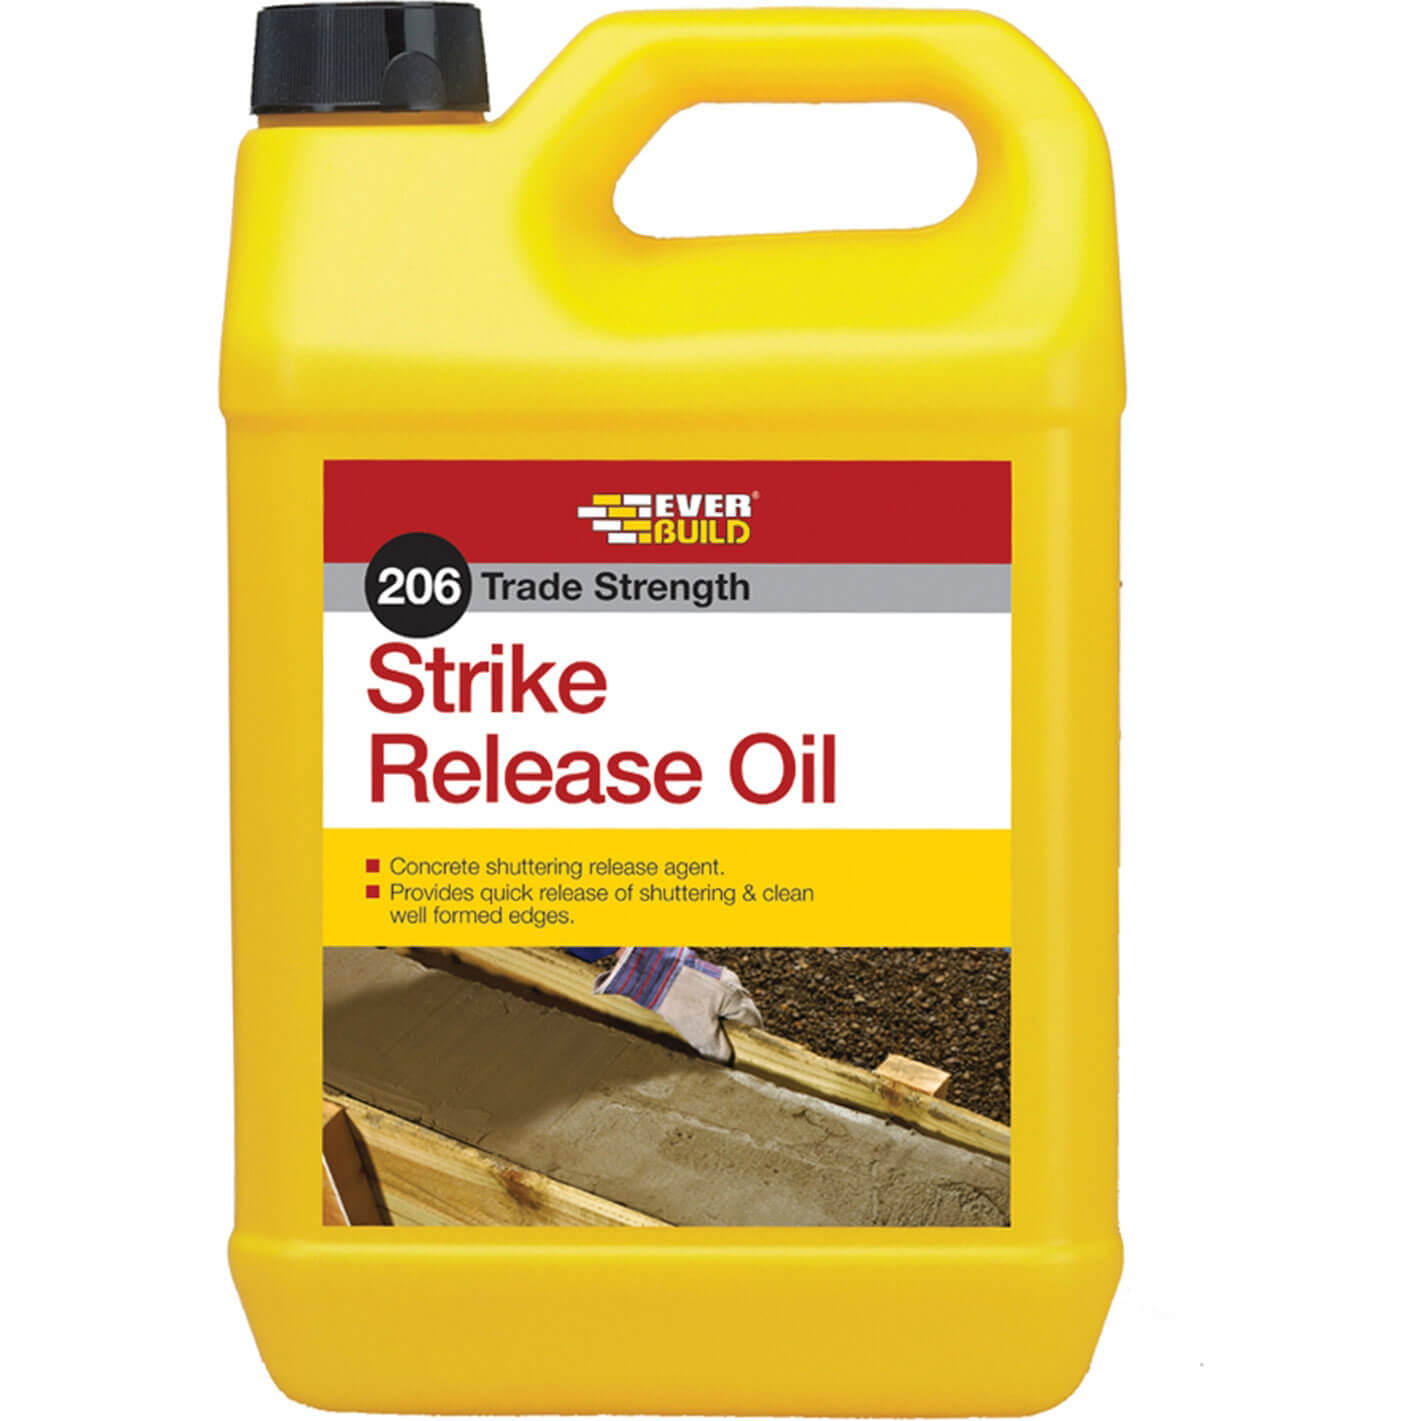 Image of Everbuild 206 Trade Strength Strike Release Oil 5L